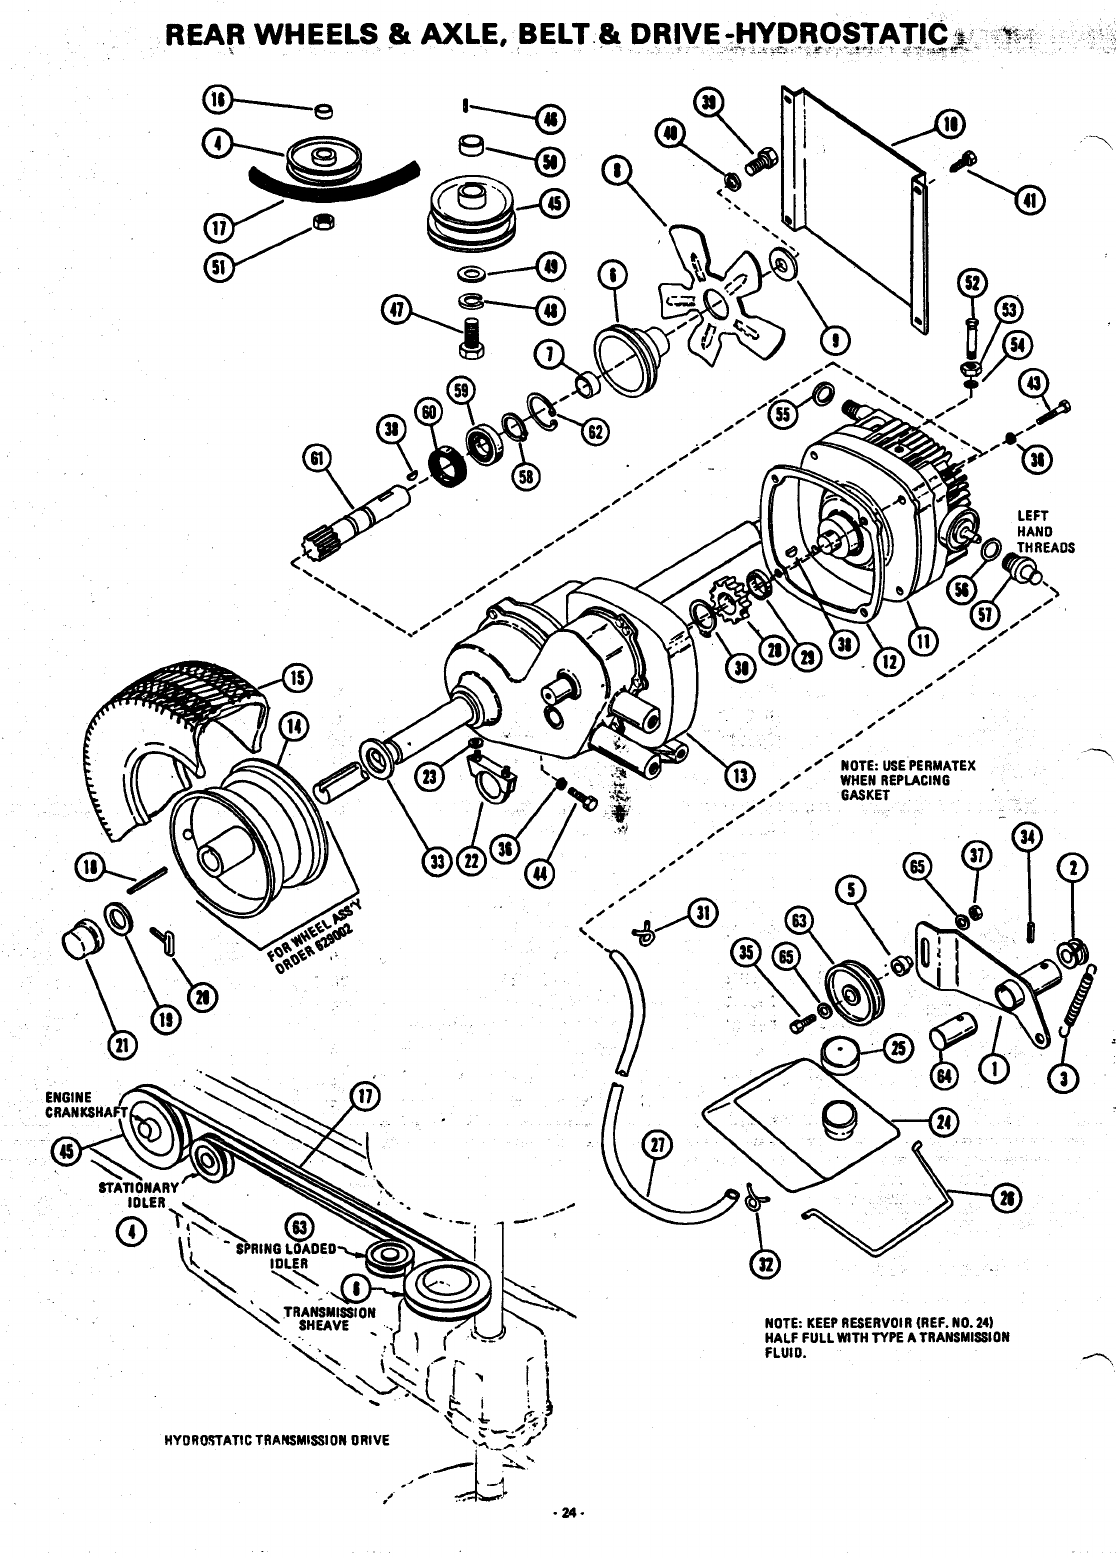 Ariens Lawn Mower Parts Manual Wheel Belt Diagram And List For Craftsman Walkbehindlawnmower